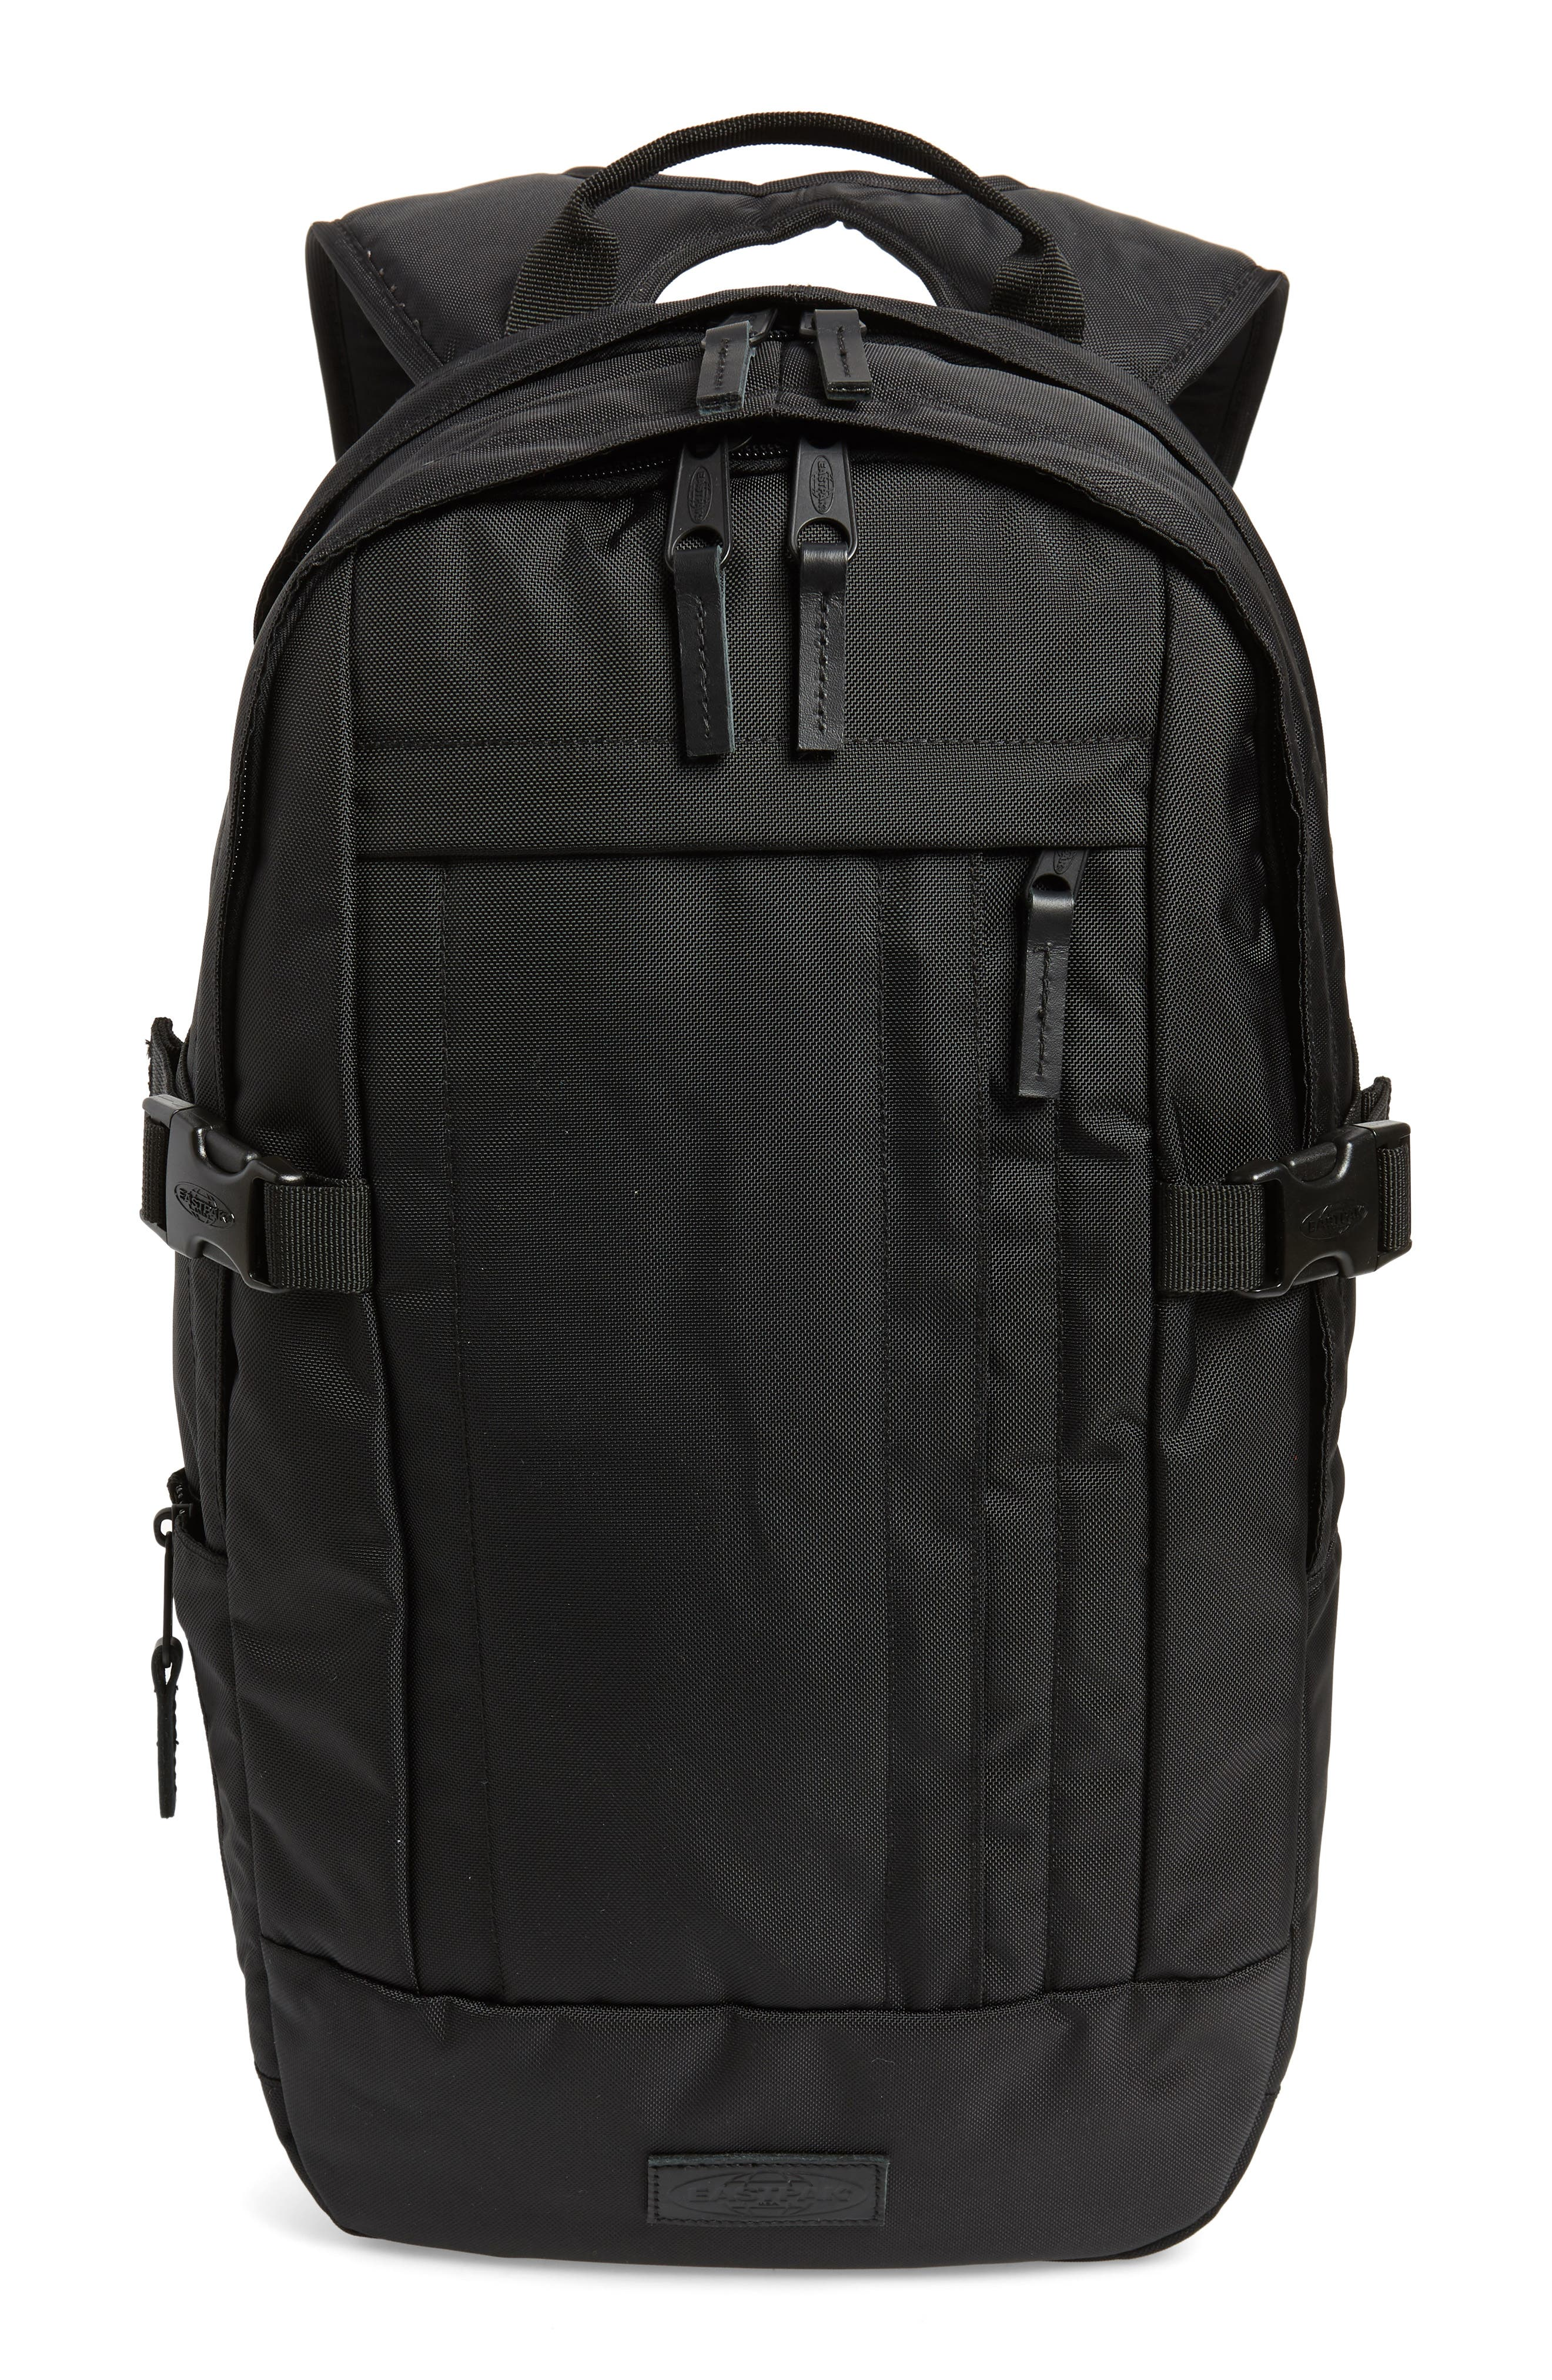 EXTRA FLOID BACKPACK - GREY